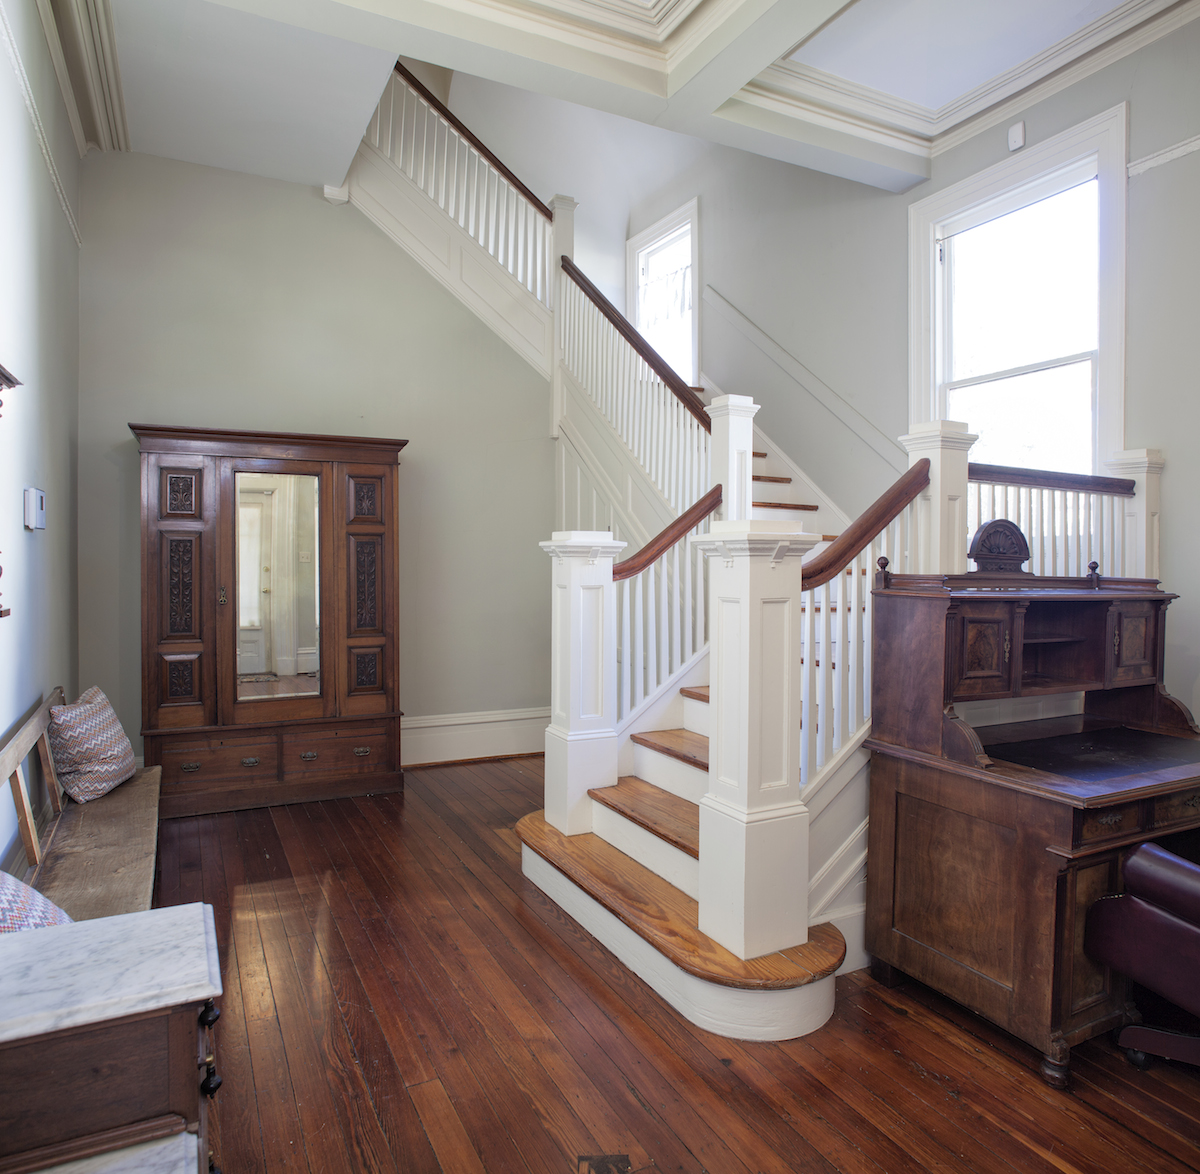 Top Bed and Breakfast Savannah Nichols Suite Entry way .jpg